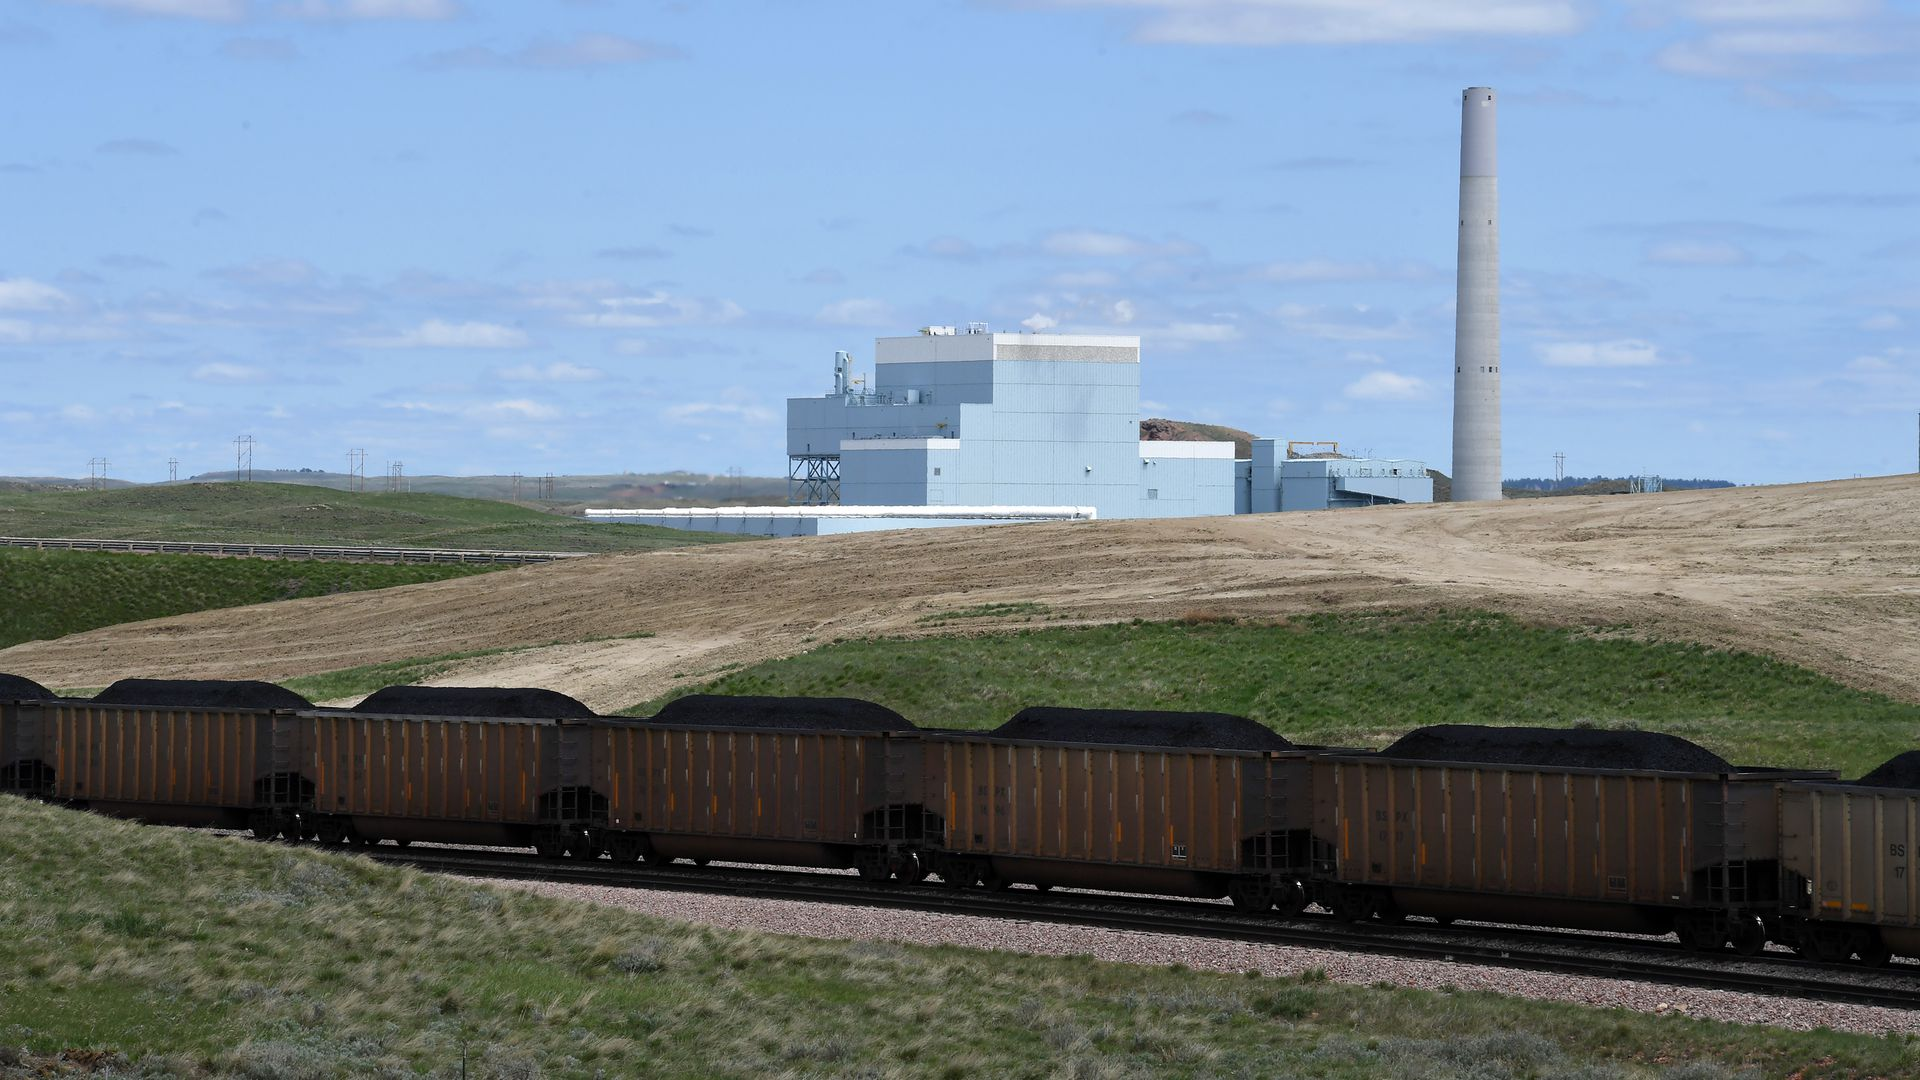 A coal train in front of a coal fired power plant.